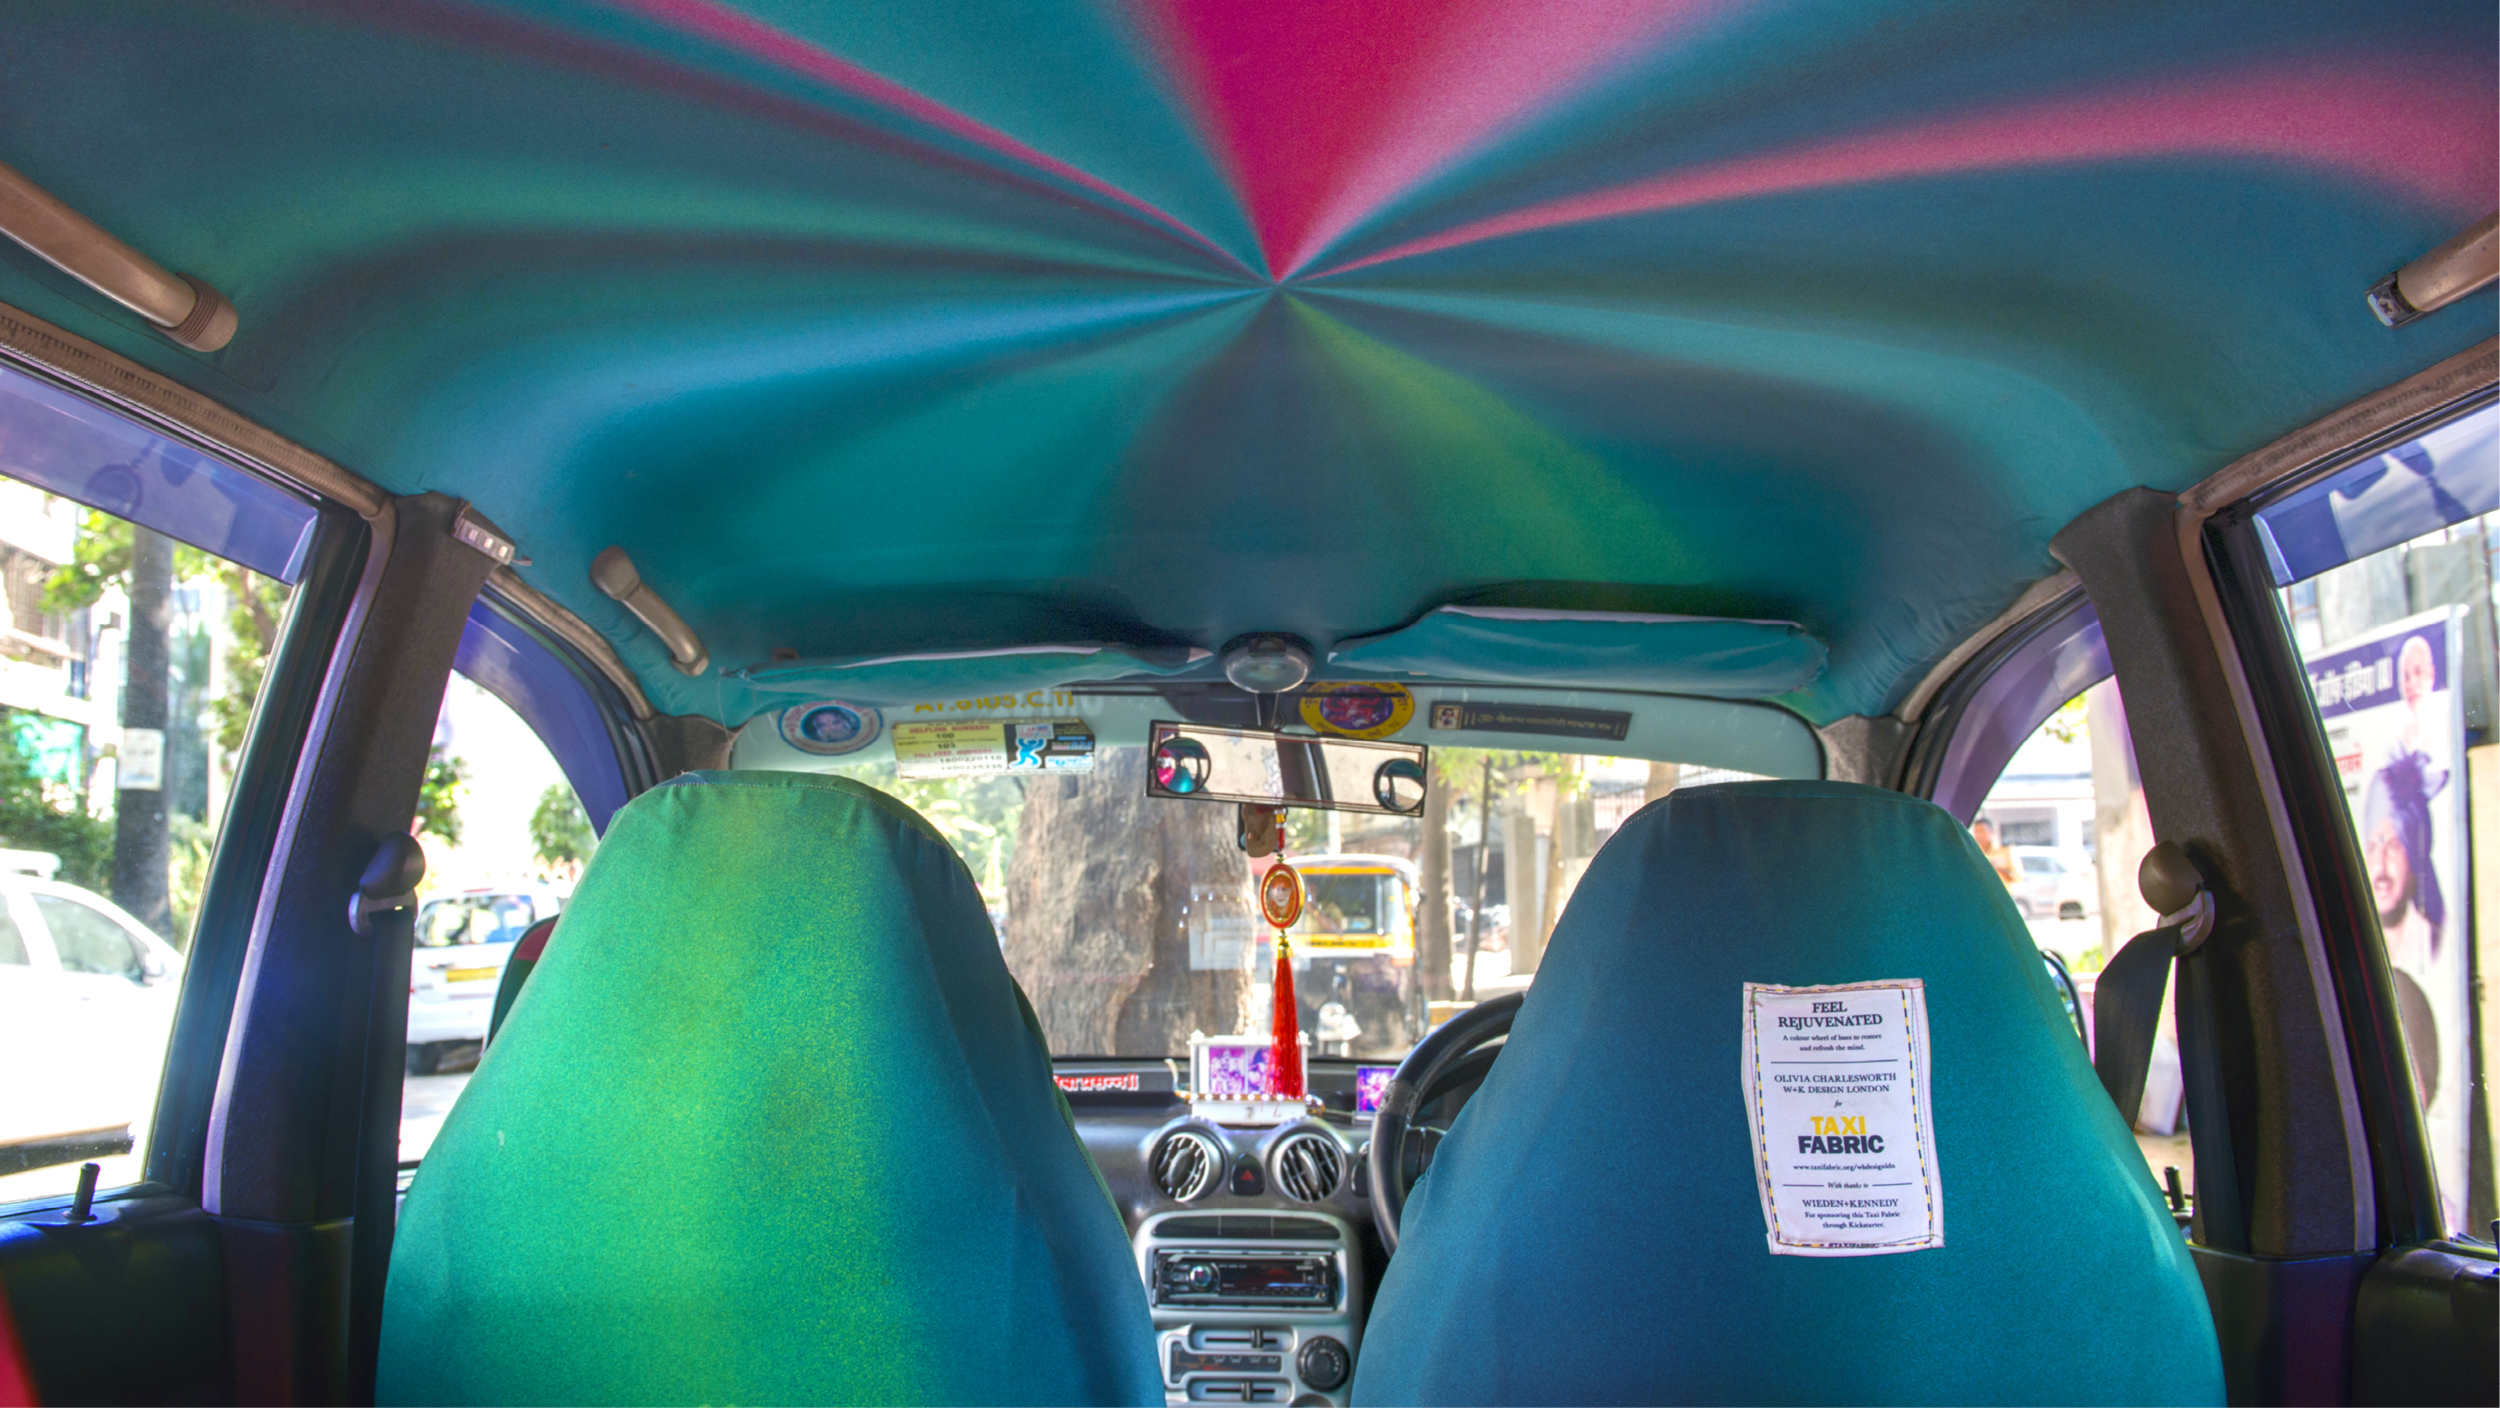 Taxi Fabric3.png